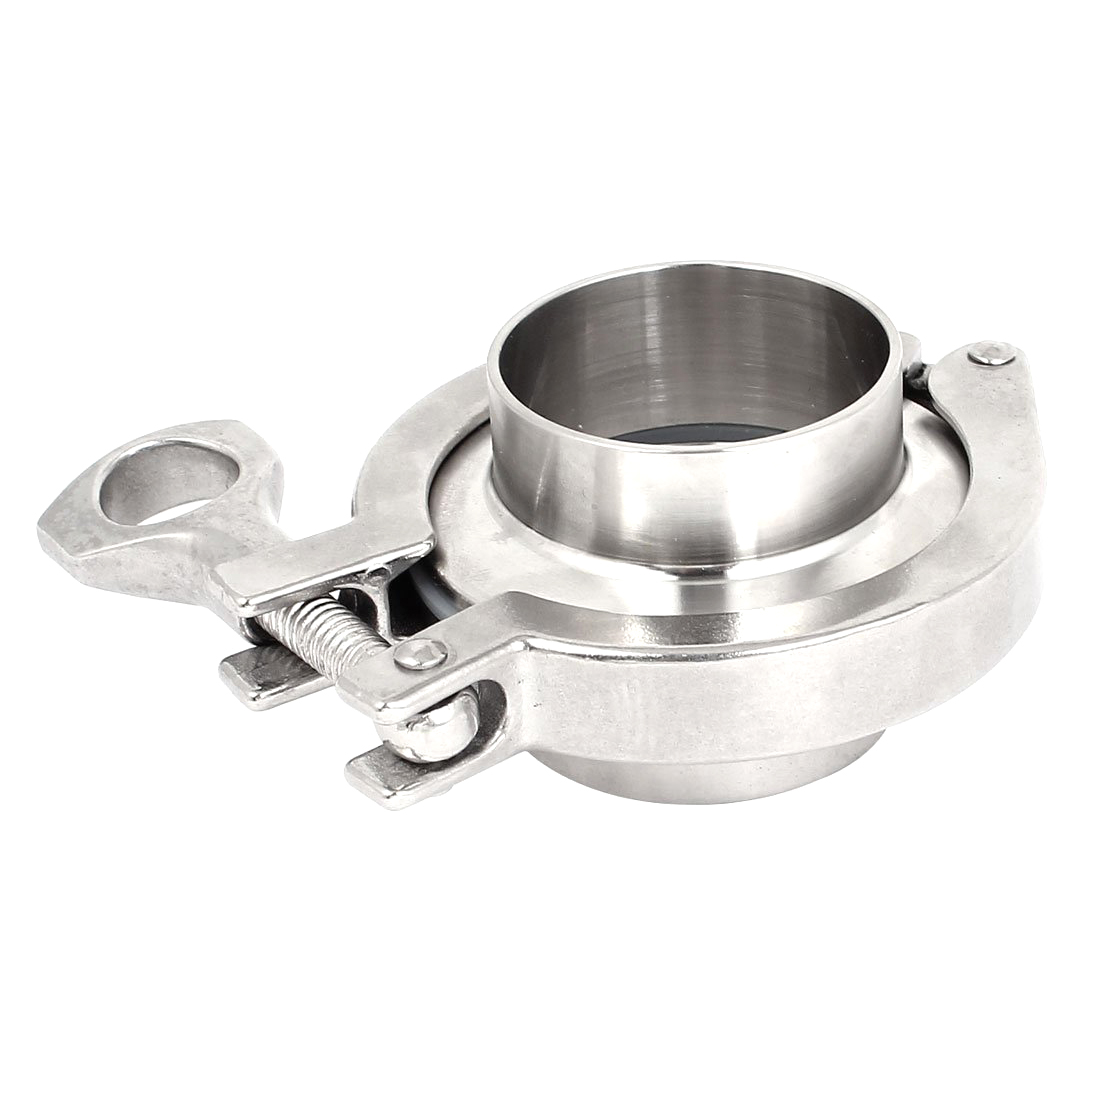 2 inch Tri Clamp 45mm Pipe OD 304 Stainless Steel Sanitary Pipe Ferrules Gasket Set 64mm Ferrule OD For Homebrew Diary Product 1 4 1 npt female x 1 5 tri clamp 304 stainless steel sanitary pipe fitting connector for homebrew ferrule od 50 5mm